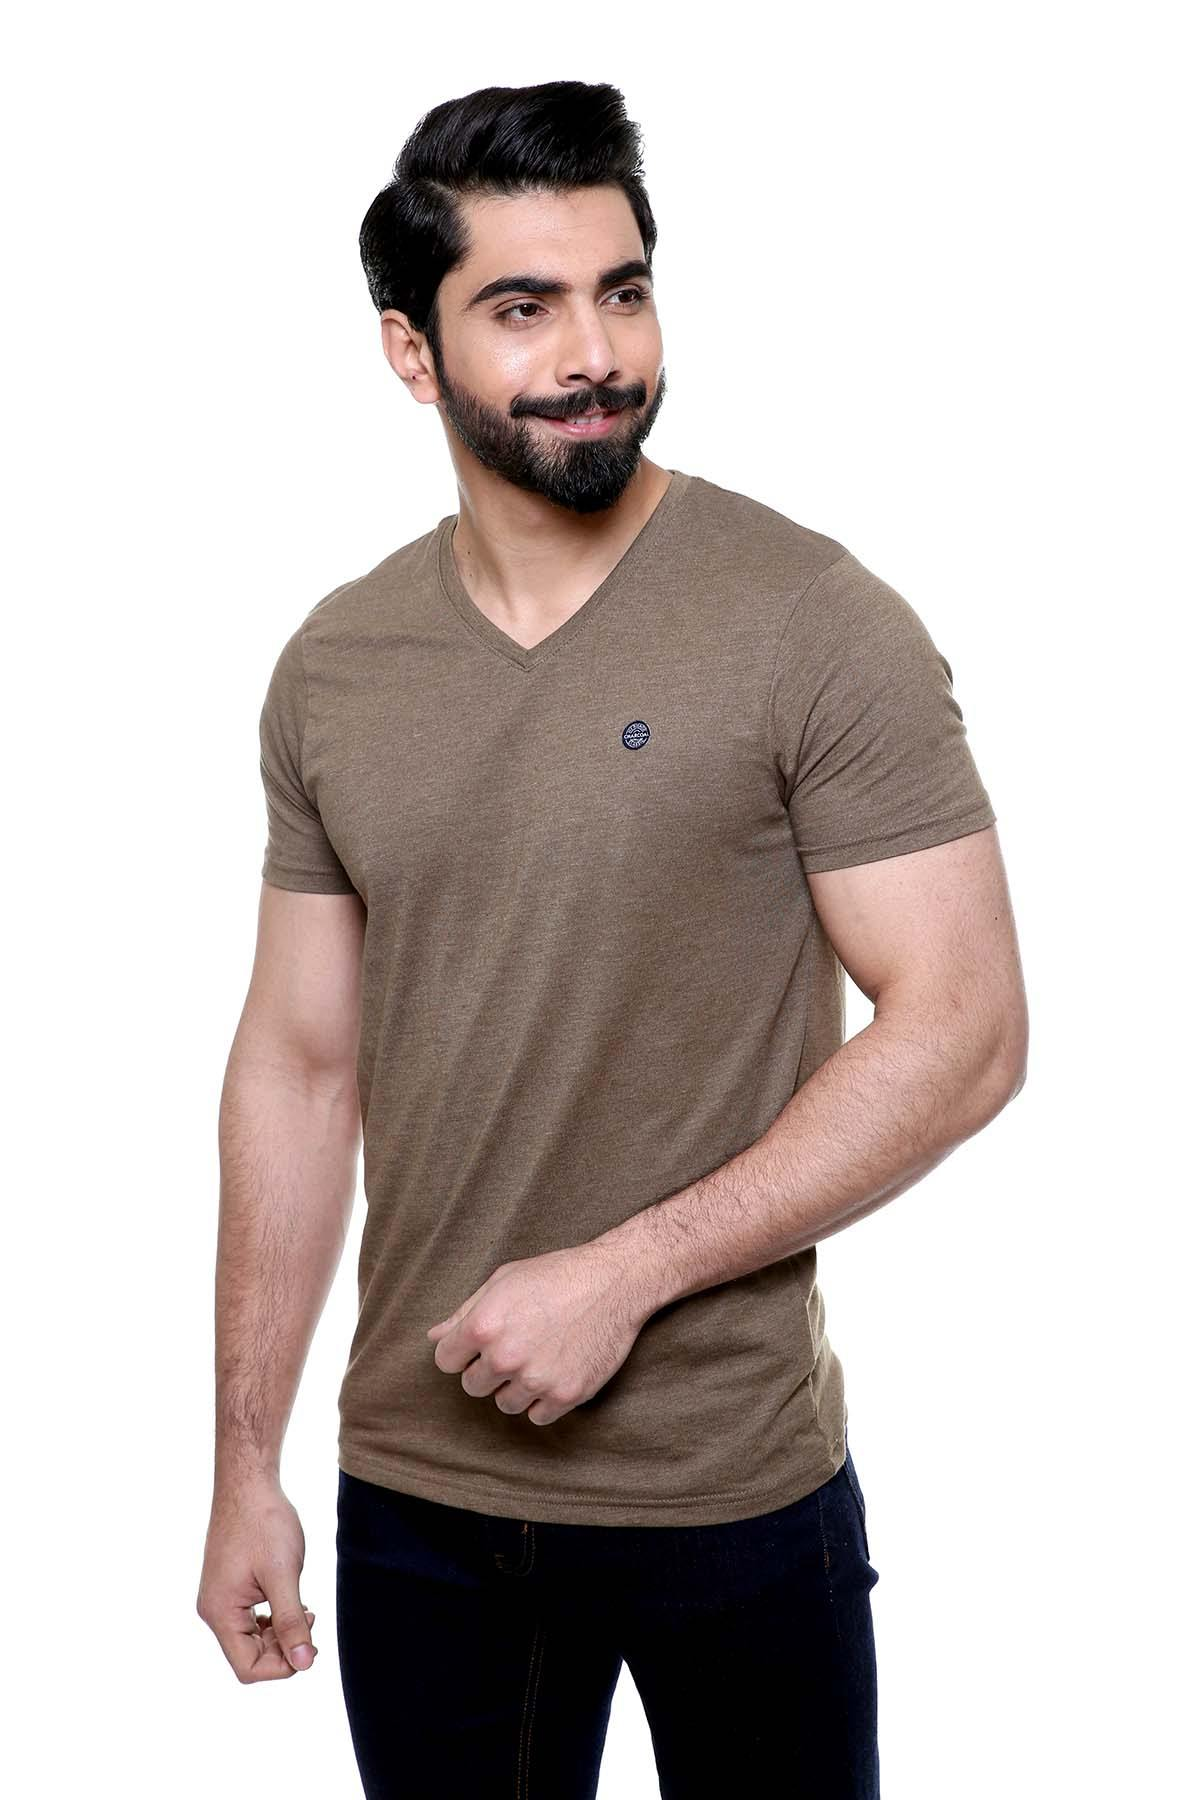 T SHIRT V NECK OLIVE - Charcoal - FAIR PRICE SHOP - POLO &